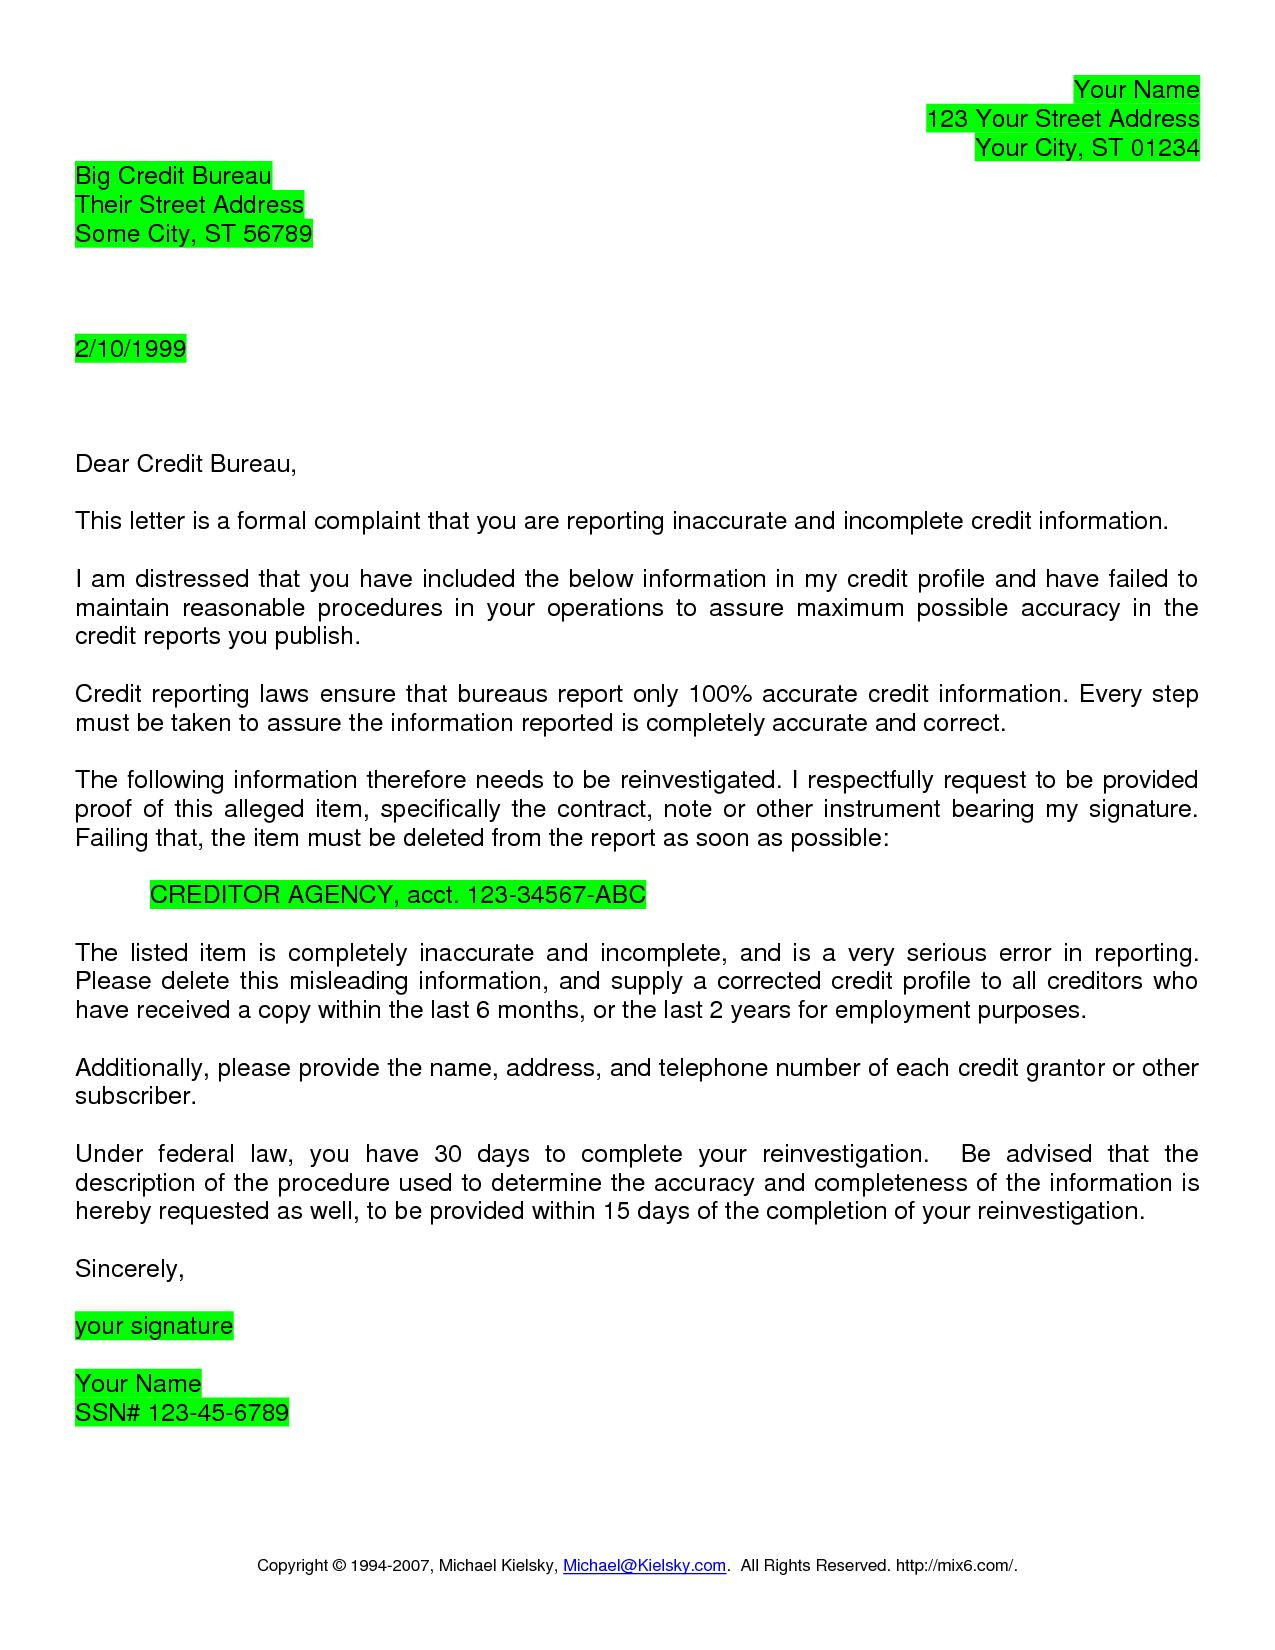 Credit Dispute Letter Templates Transunion